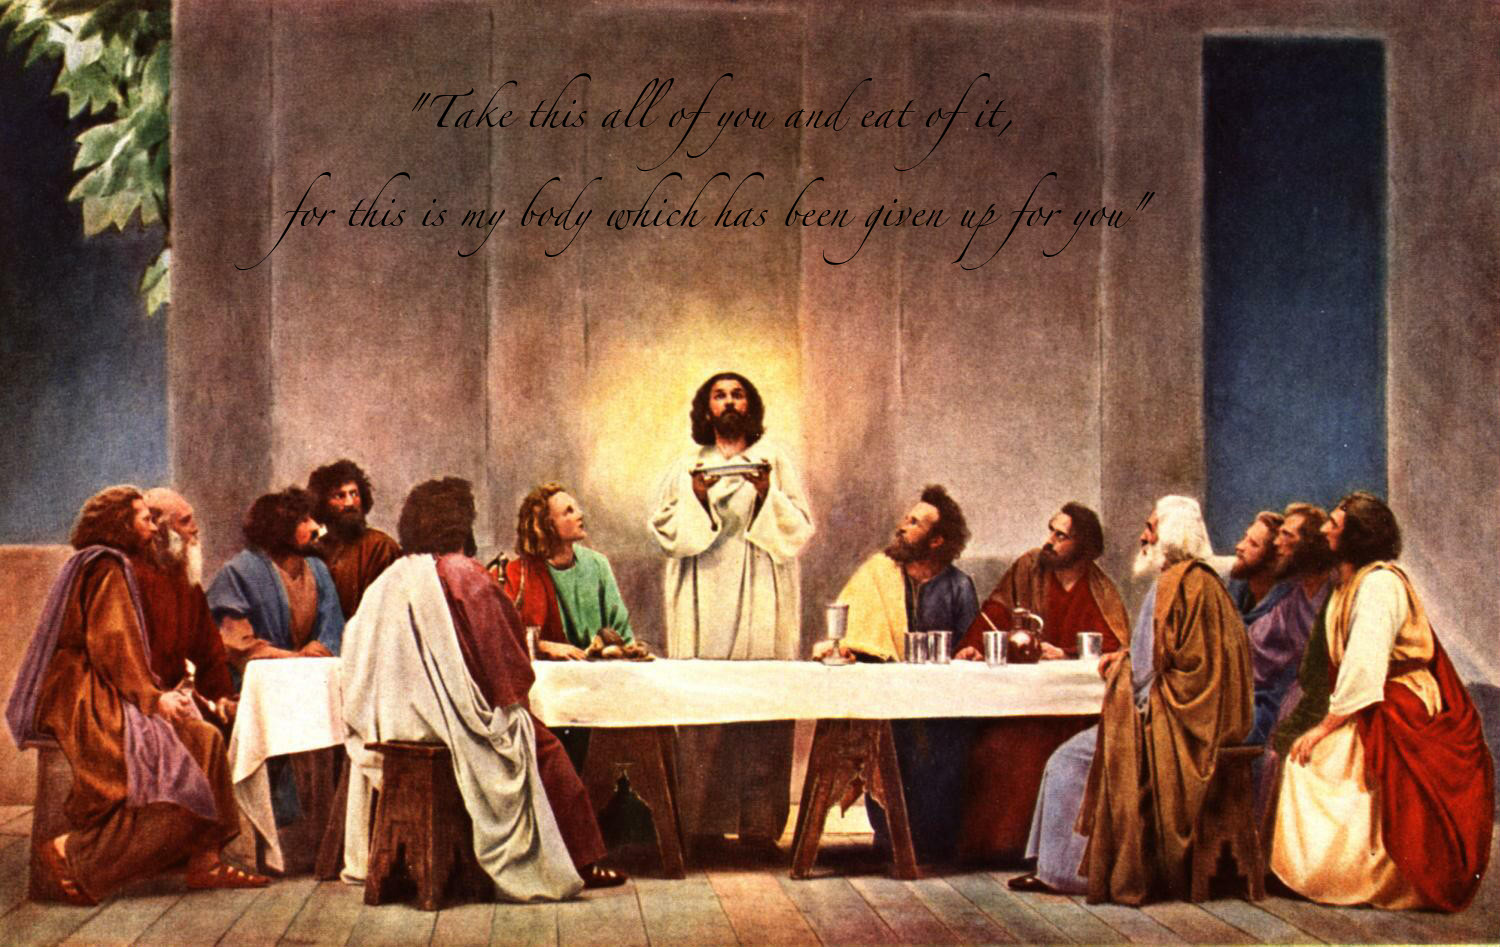 Last Supper Wallpaper Jesus Praying At The Last Supper 1190686 Hd Wallpaper Backgrounds Download